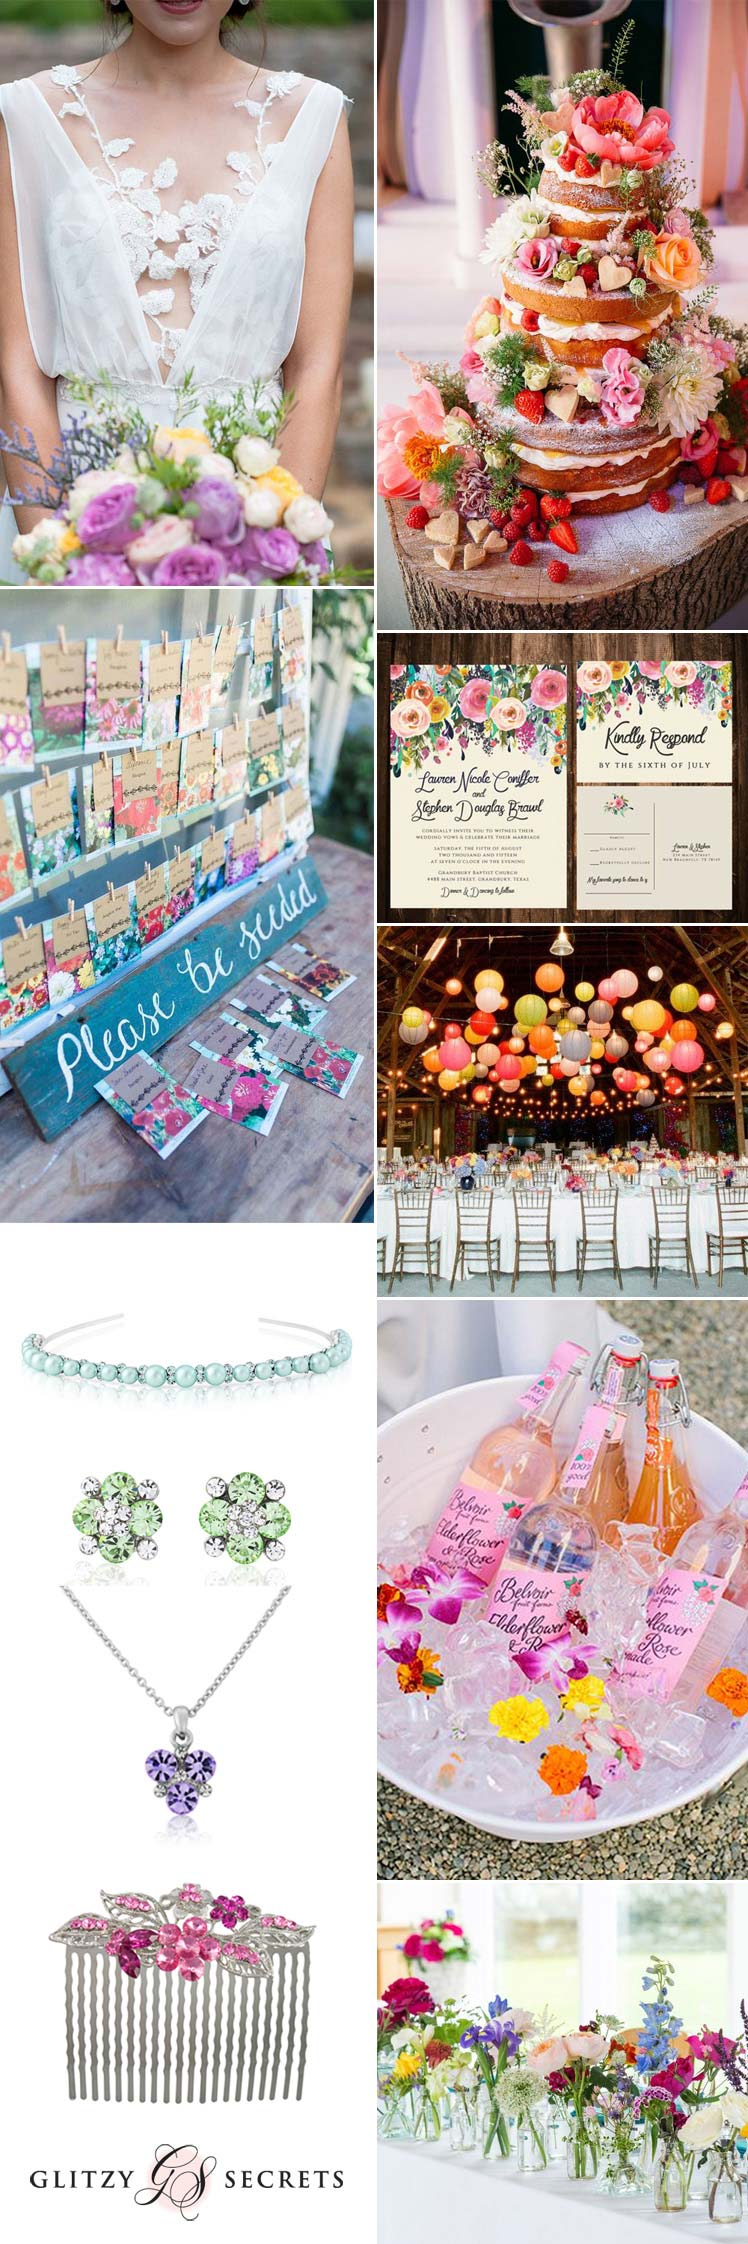 Bright coloured spring wedding ideas